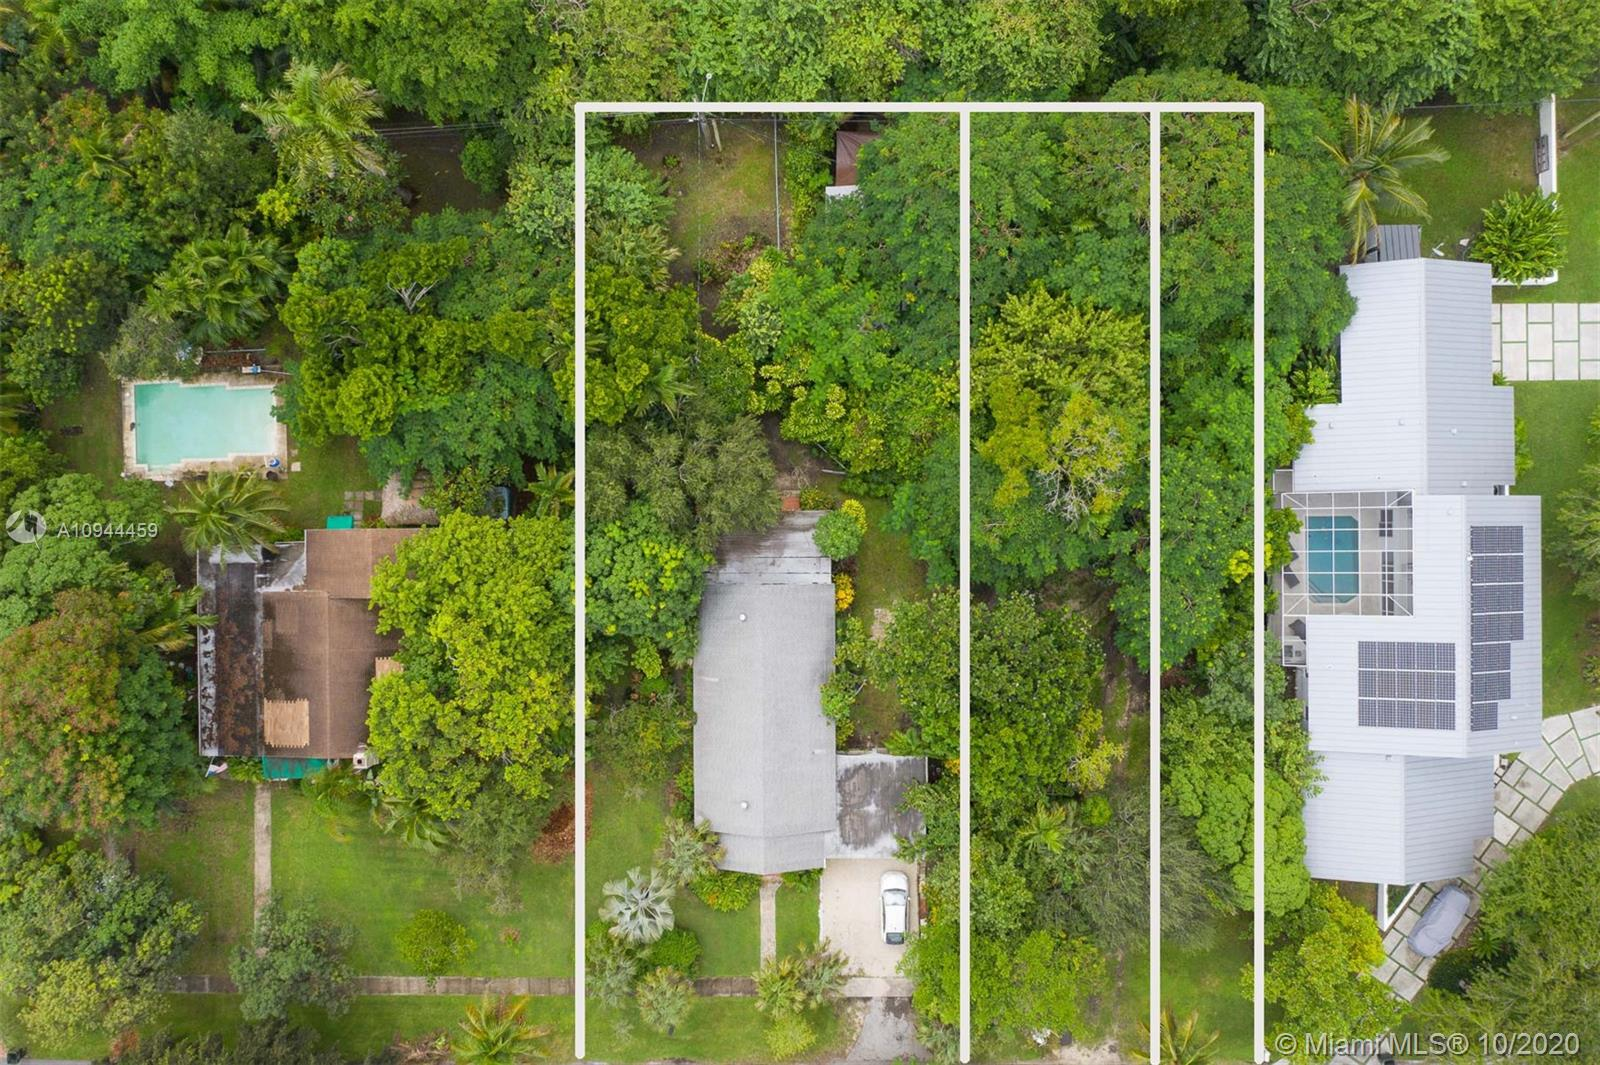 WOW!! three folios combined 09-4036-033-0250/0260/0270 over a half acre in prime South Miami. This is a builders dream, price is based on land value. Home is almost 100 years old built with dade pine. Check with dade county to see how many homes can occupy this property. Plus aprrox 25 feet annexed from dade county accross total rear of property.